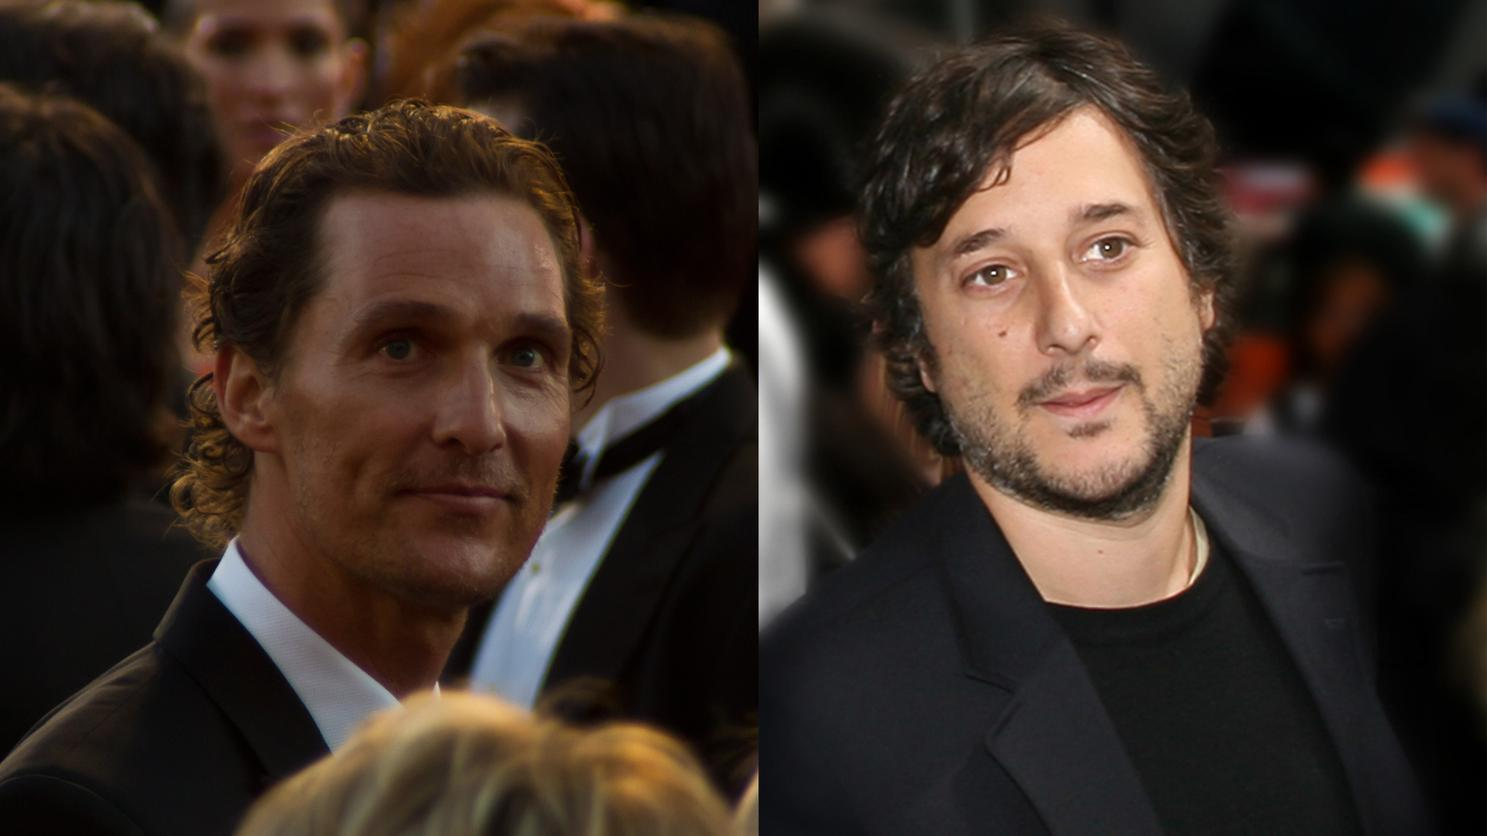 Harmony Korine and Matthew McConaughey are making a movie: https://t.co/SAz0gxFVXM https://t.co/VLieLVlYbL